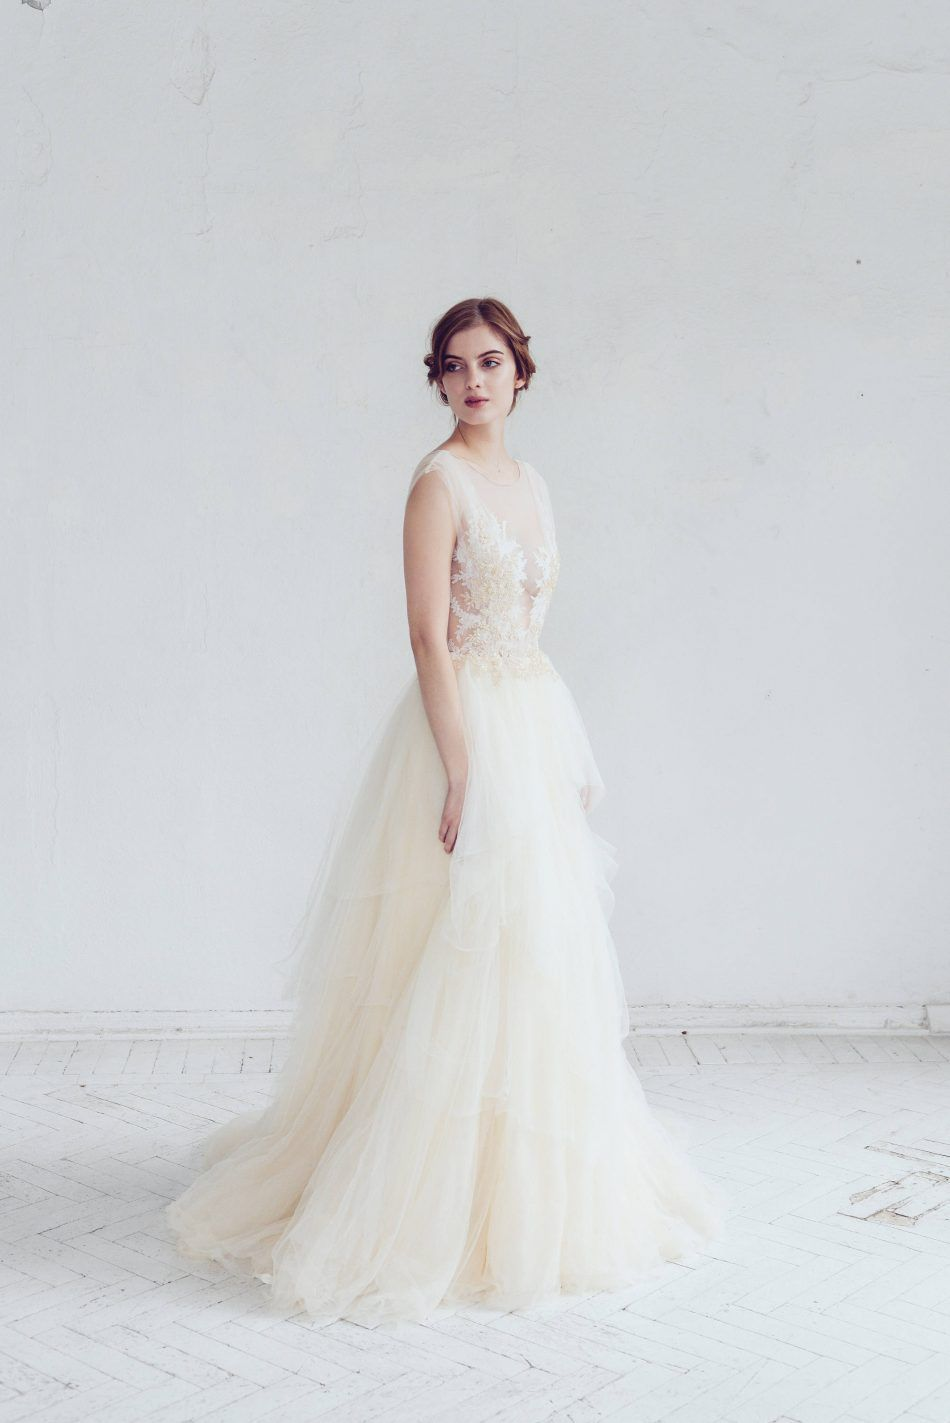 a5aac4e5a4 Champagne   Ivory Tulle Wedding Dress - Chic Vintage Brides   Chic Vintage  Brides